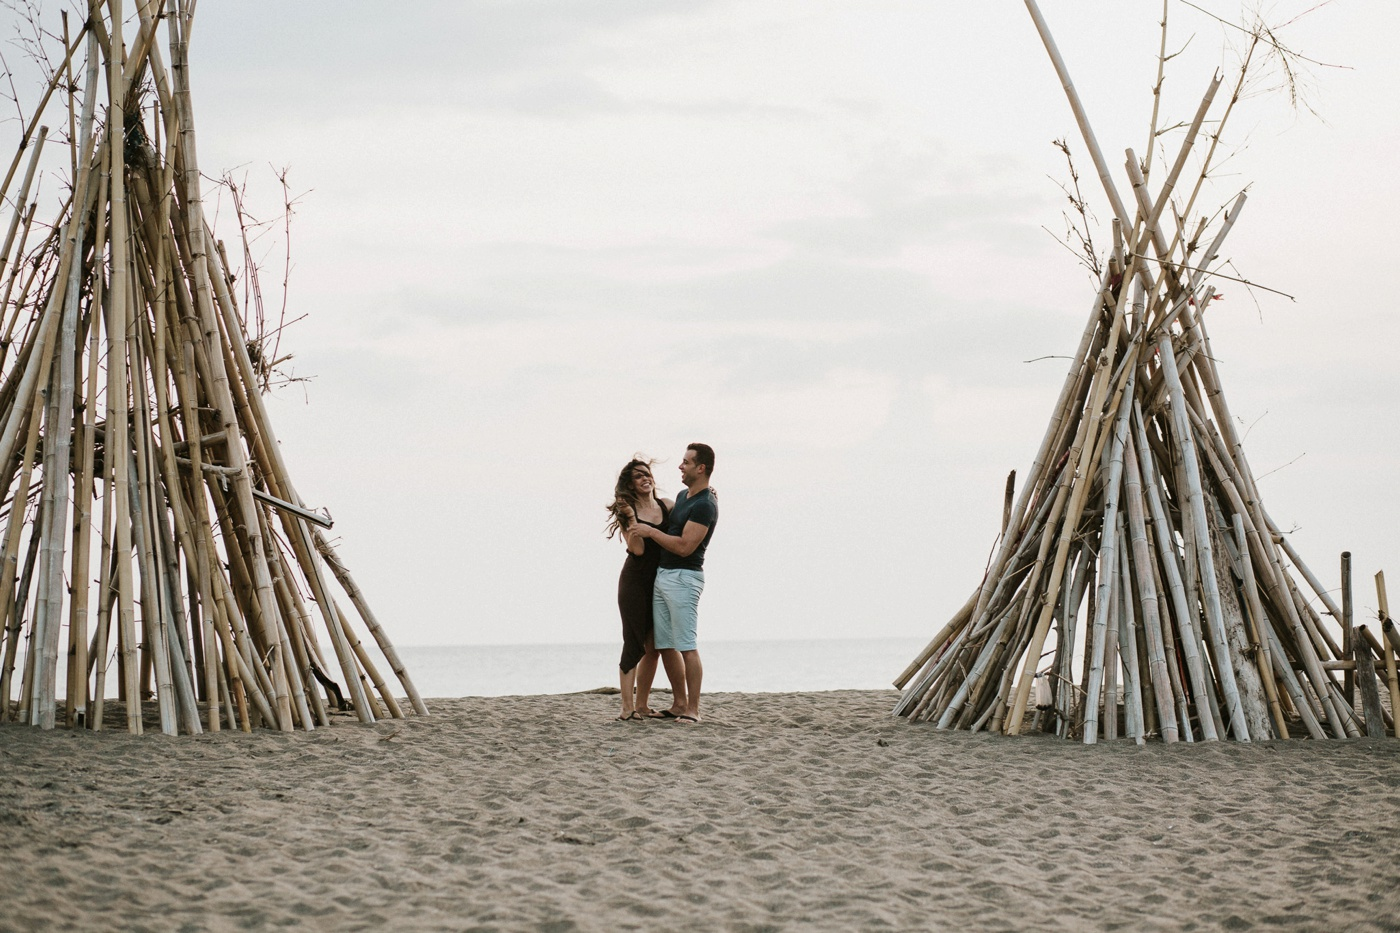 Deb-Ibs_Bali-Beach-Relaxed-Engagement-Session_Destination-Wedding-Photography_Melbourne-Wedding-Photographer_09